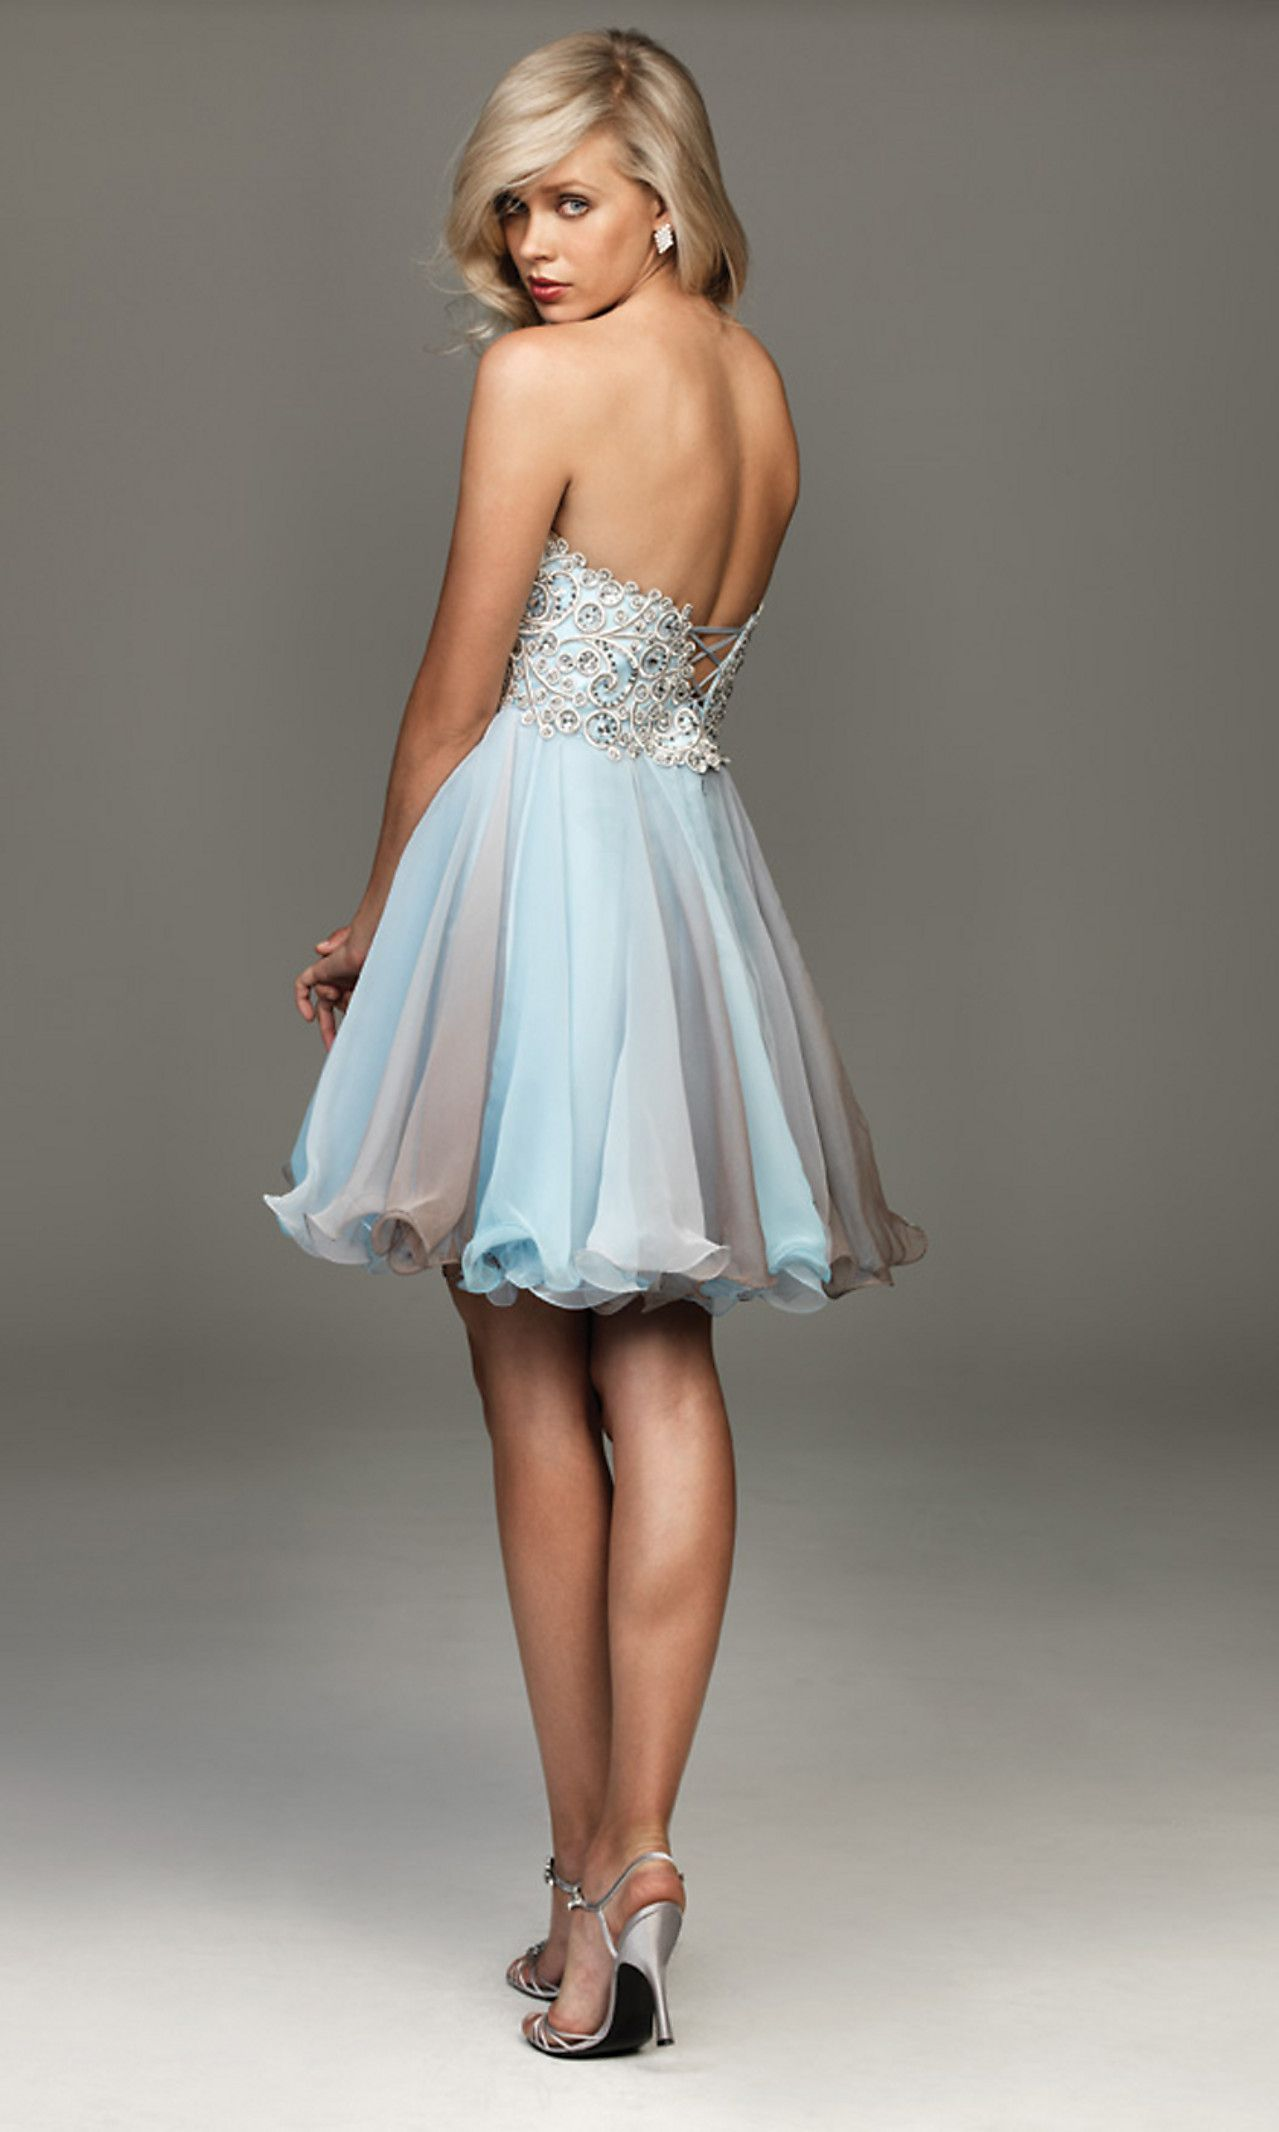 Short strapless madison james blue party dress dresses to feel